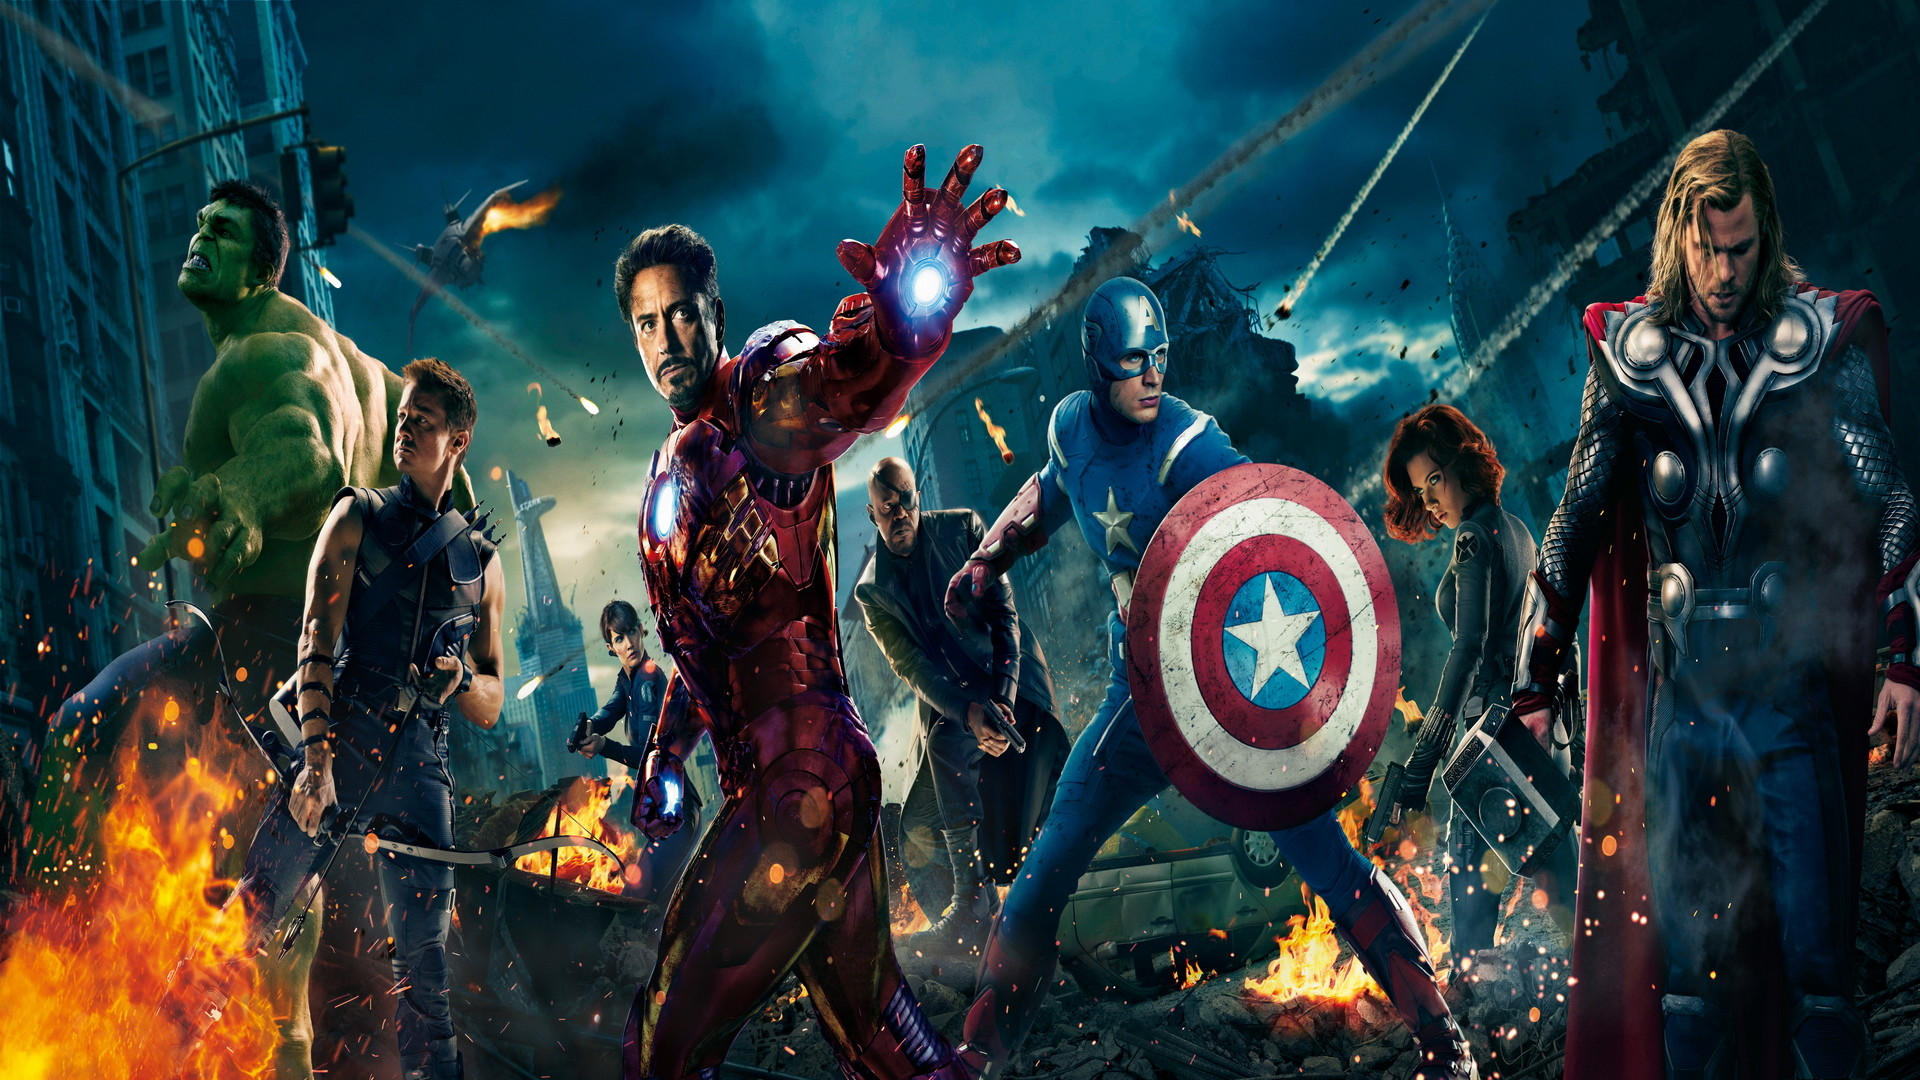 1920x1080 The Avengers HD desktop wallpaper : High Definition : Fullscreen .